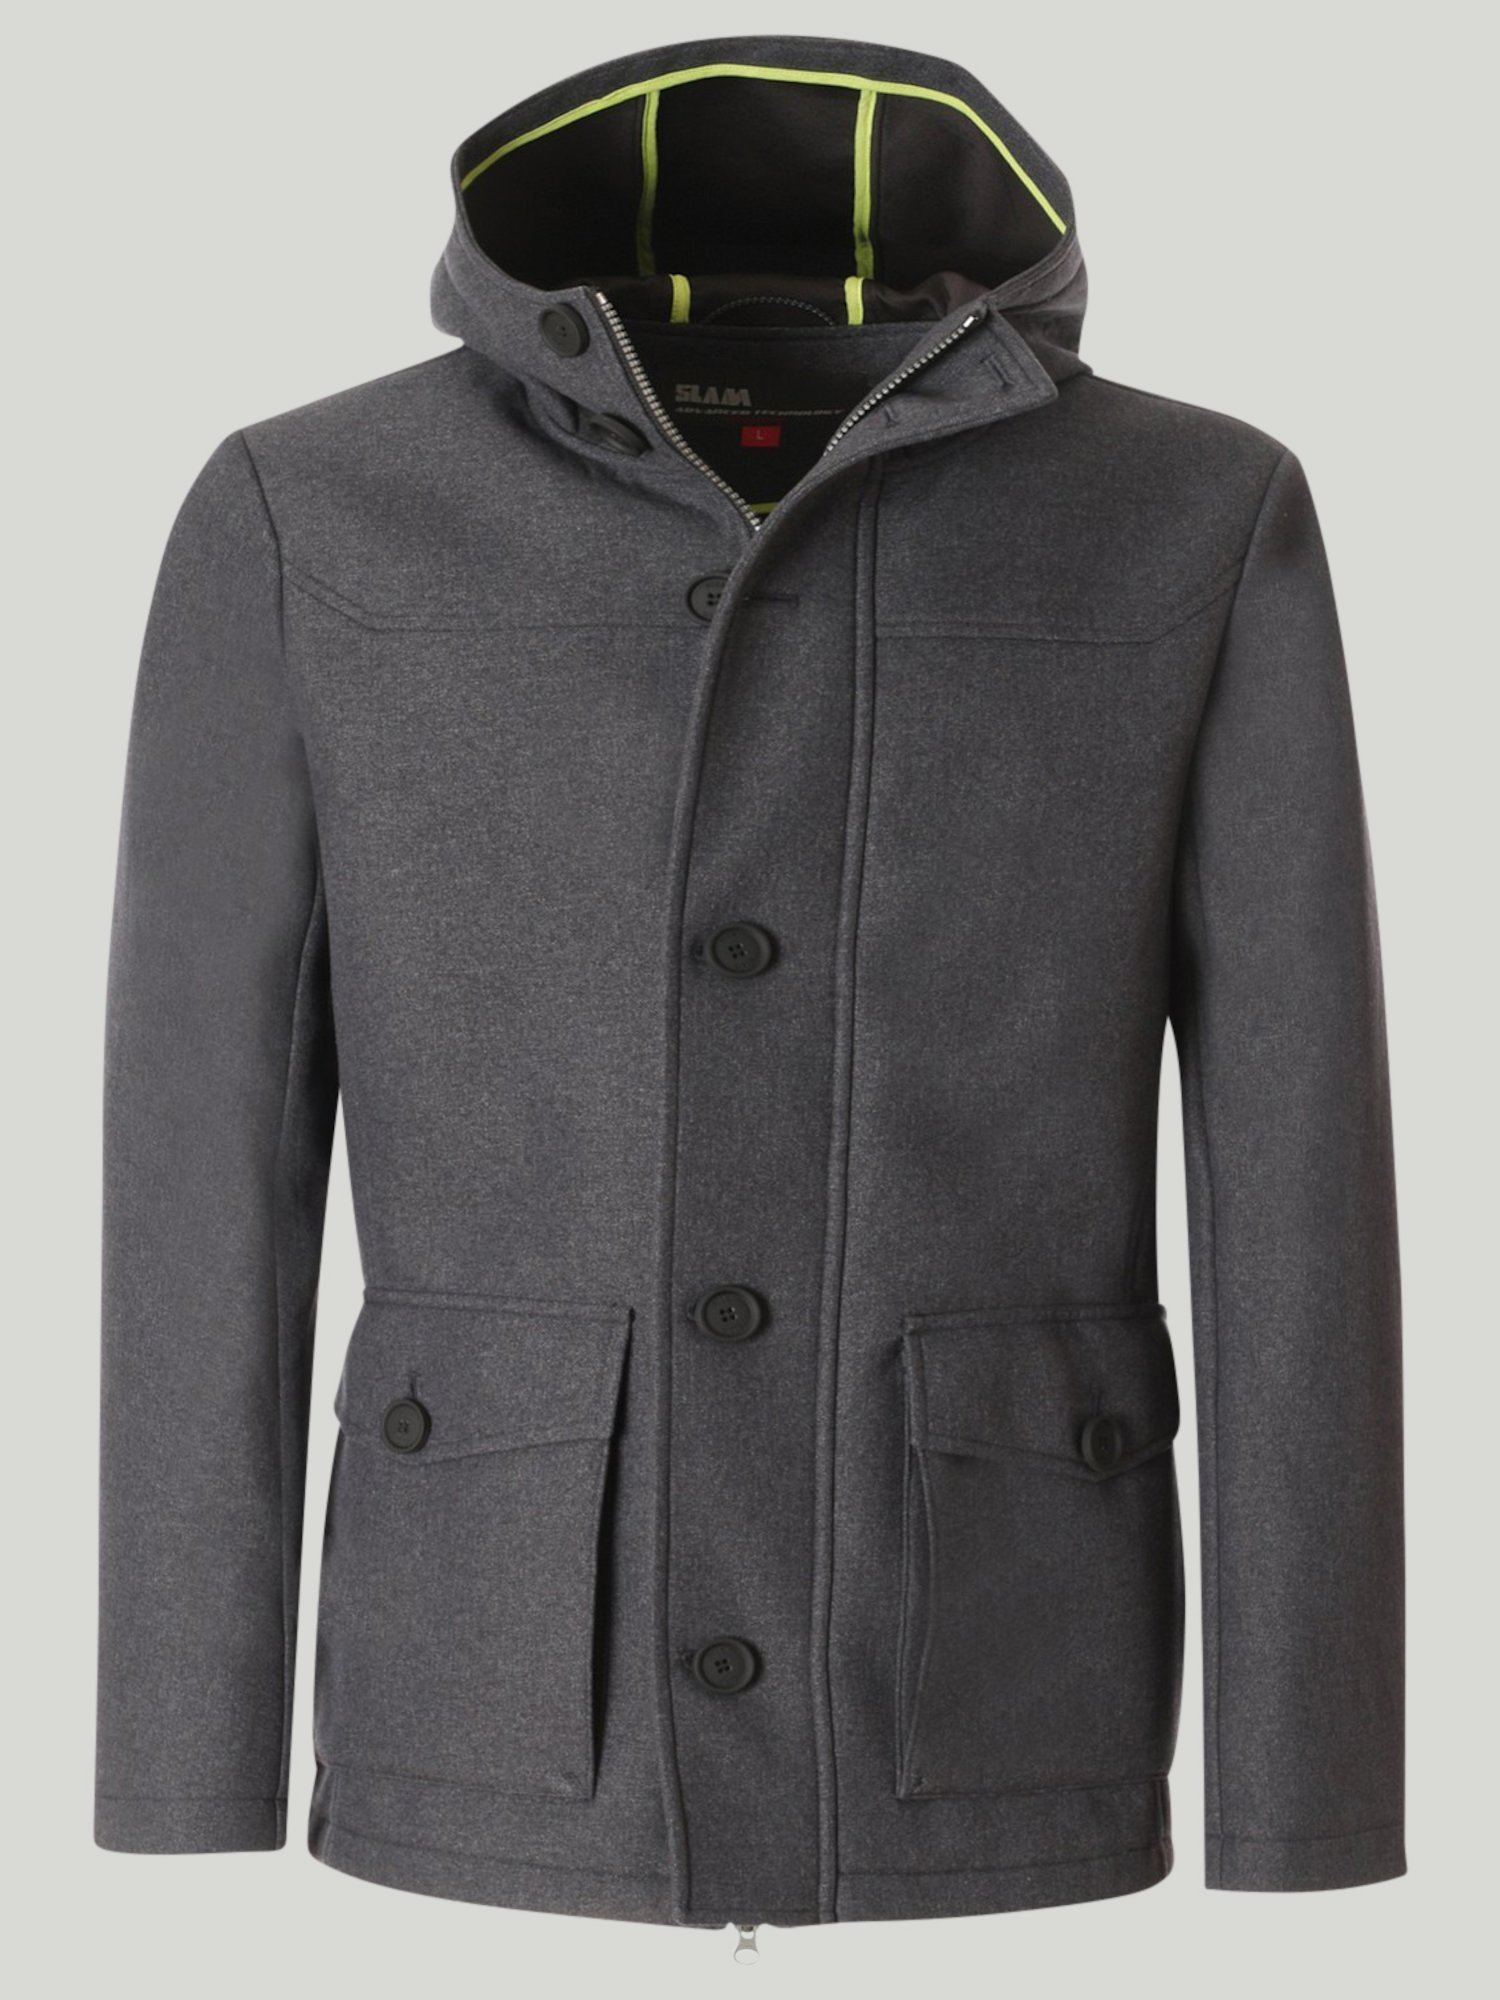 Cros jacket - Grey Melange